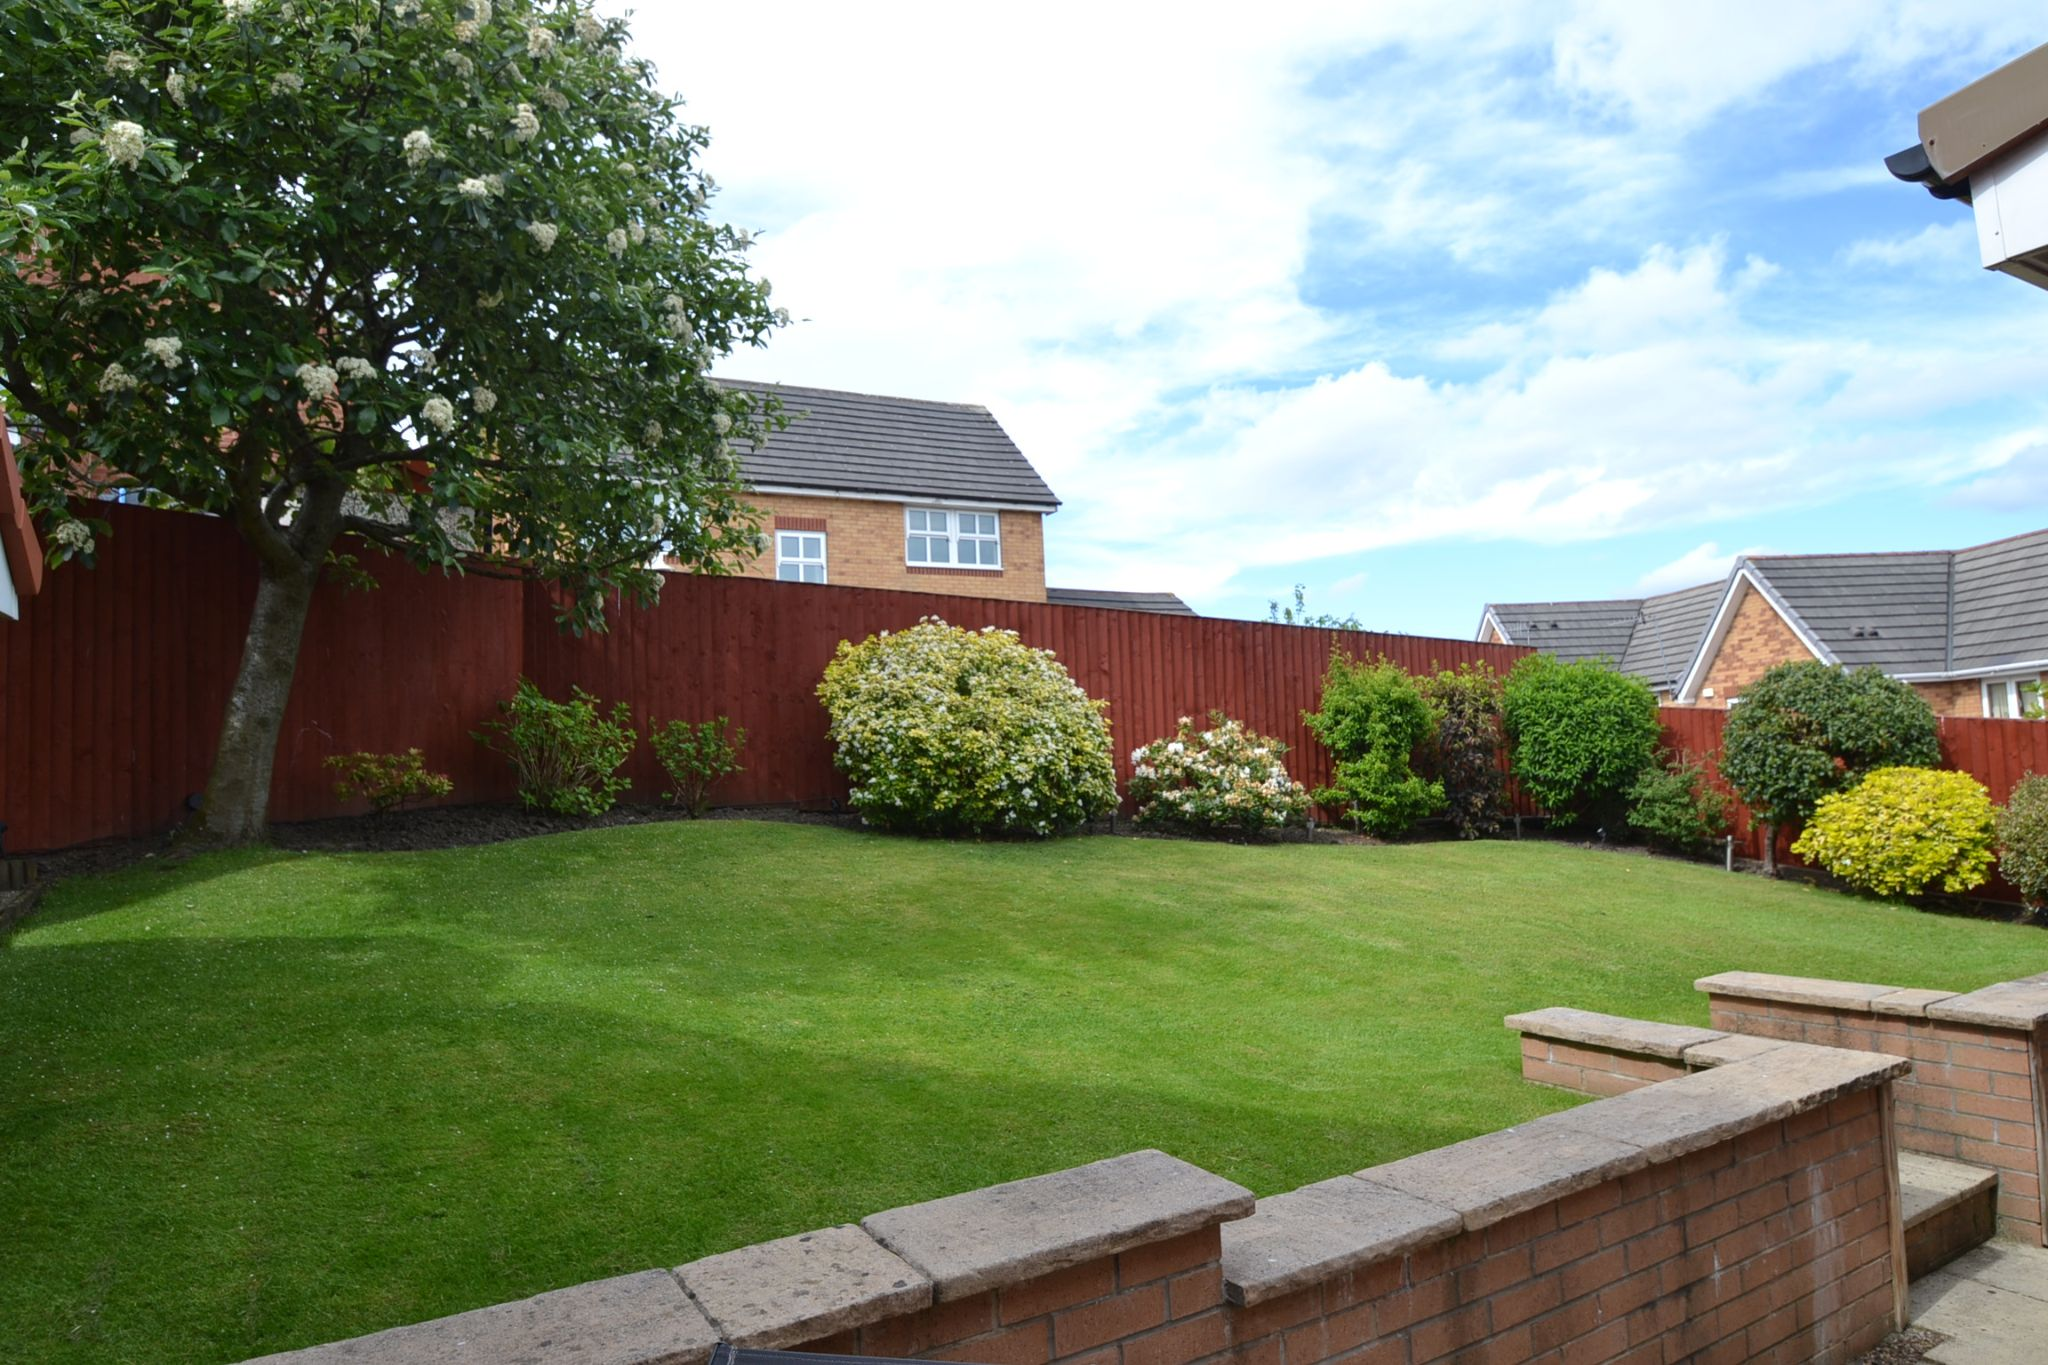 3 Bedroom Detached House For Sale - Photograph 25